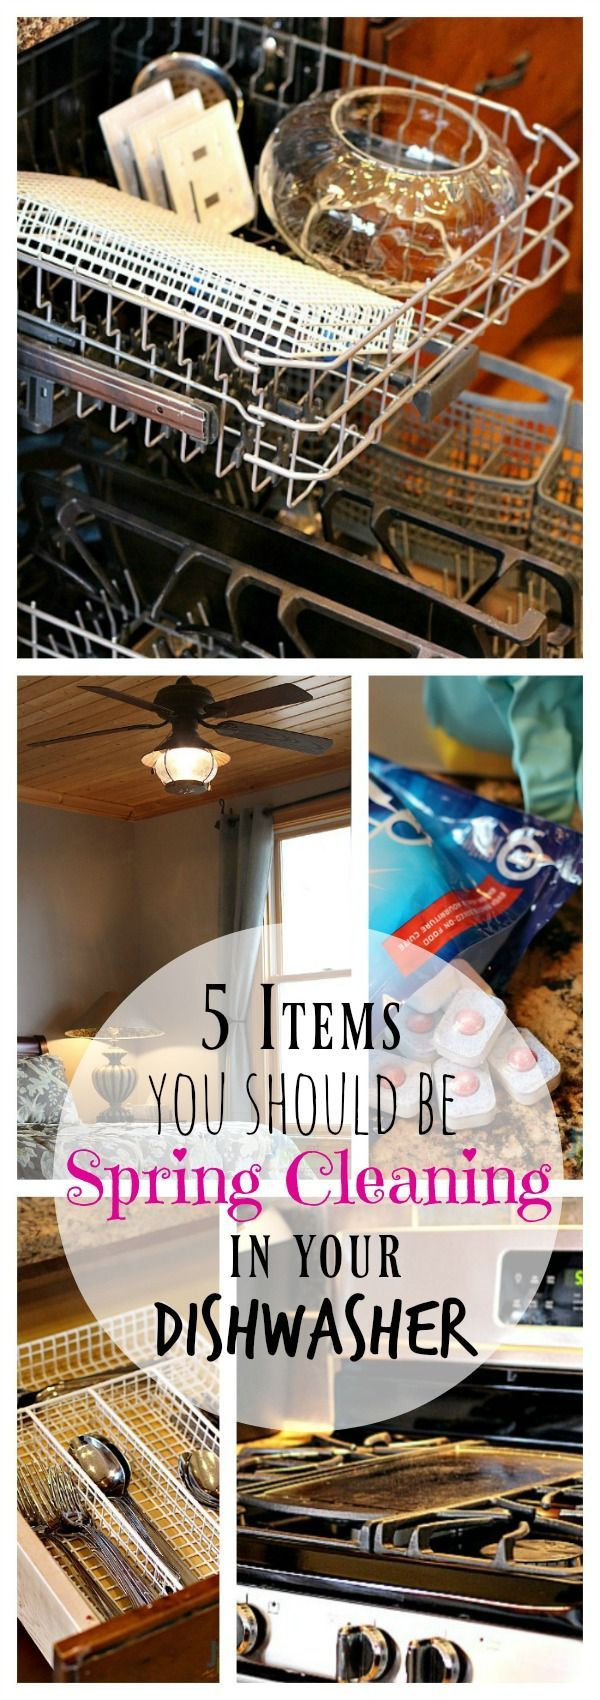 Want to save time on your Spring Clenaing? Try using the dishwasher and Finish products to keep these household items sparkling! #EverydaySaves #ad